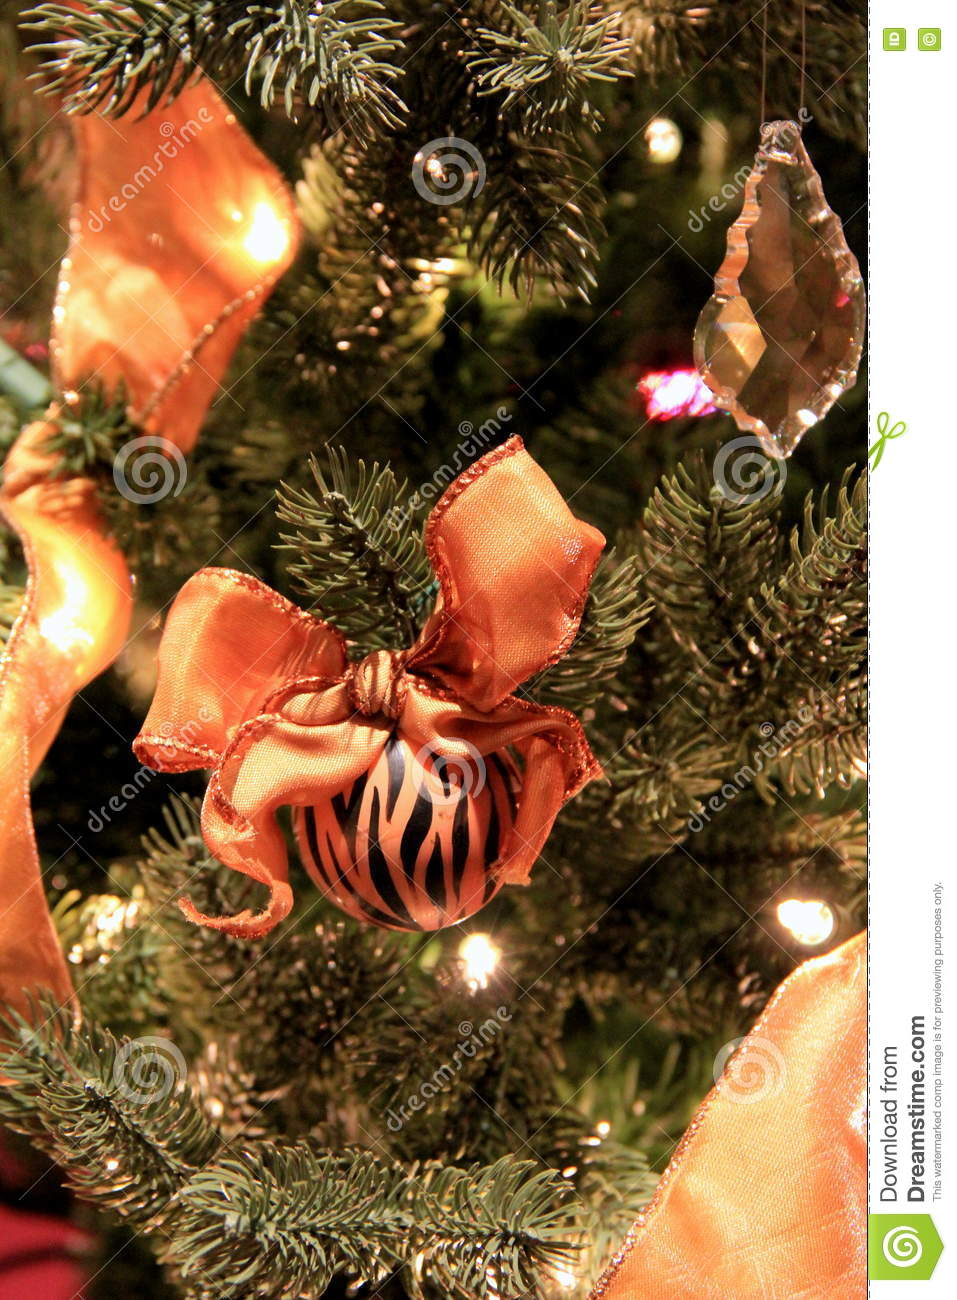 tiger themed christmas tree